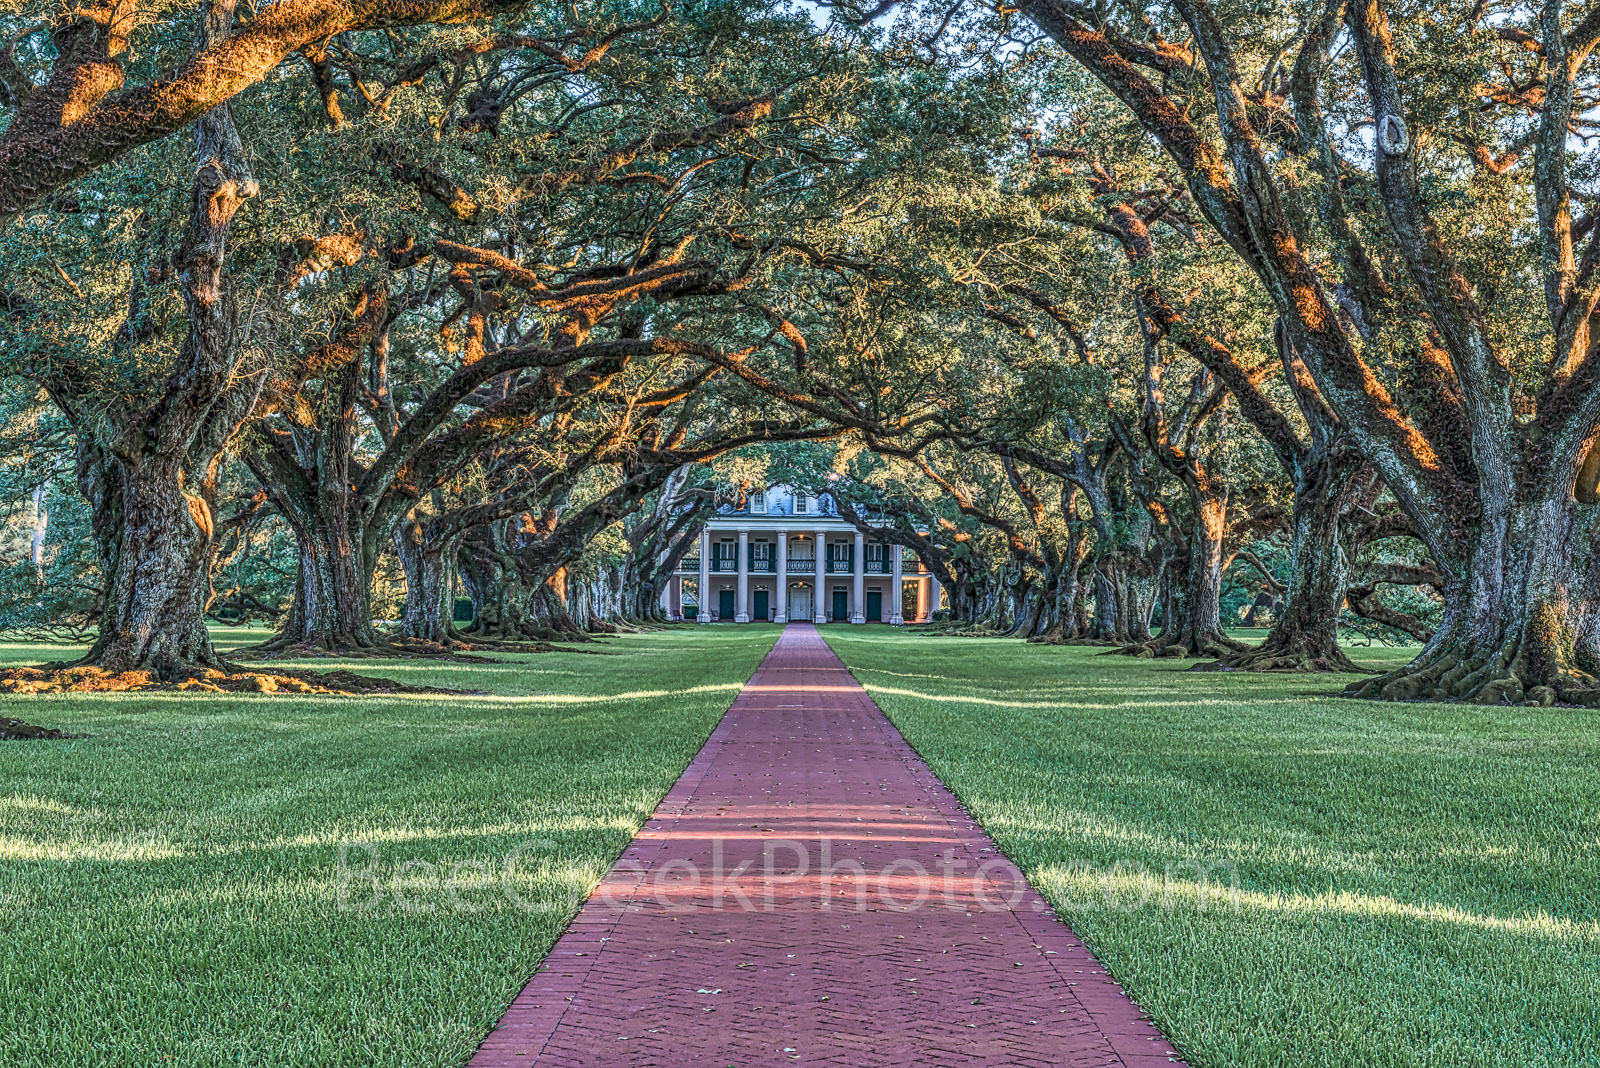 Oak Alley plantation, landmark, 300 year old trees, Vacherie, Louisiana, Mississippi river, National Historic landmark, Vacherie, slaves, sugar cane, , photo